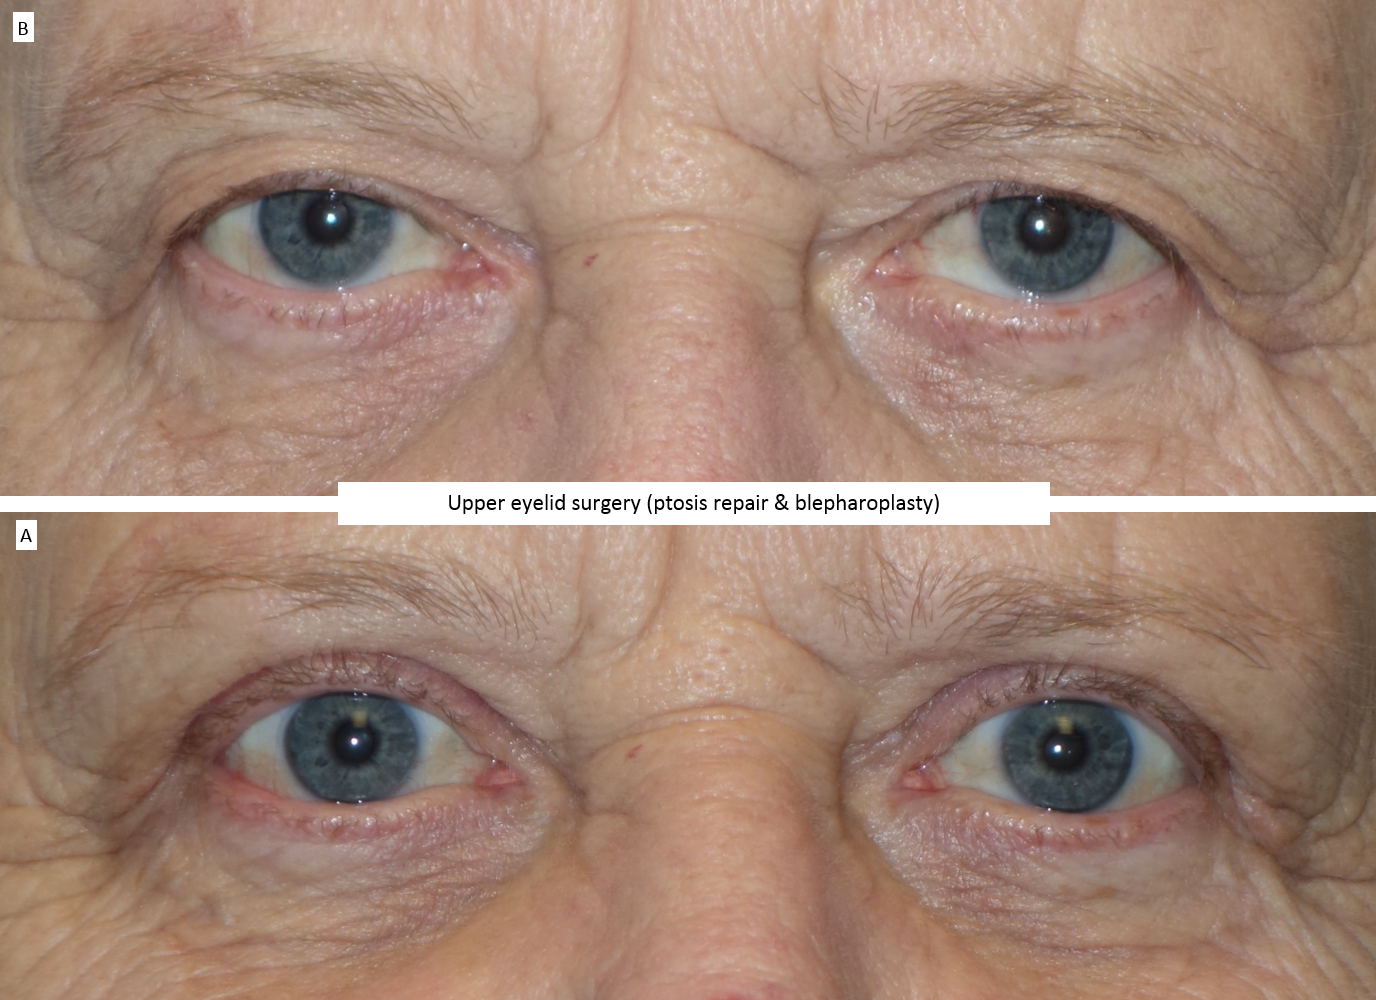 Upper eyelid surgery (ptosis repair & blepharoplasty) 2